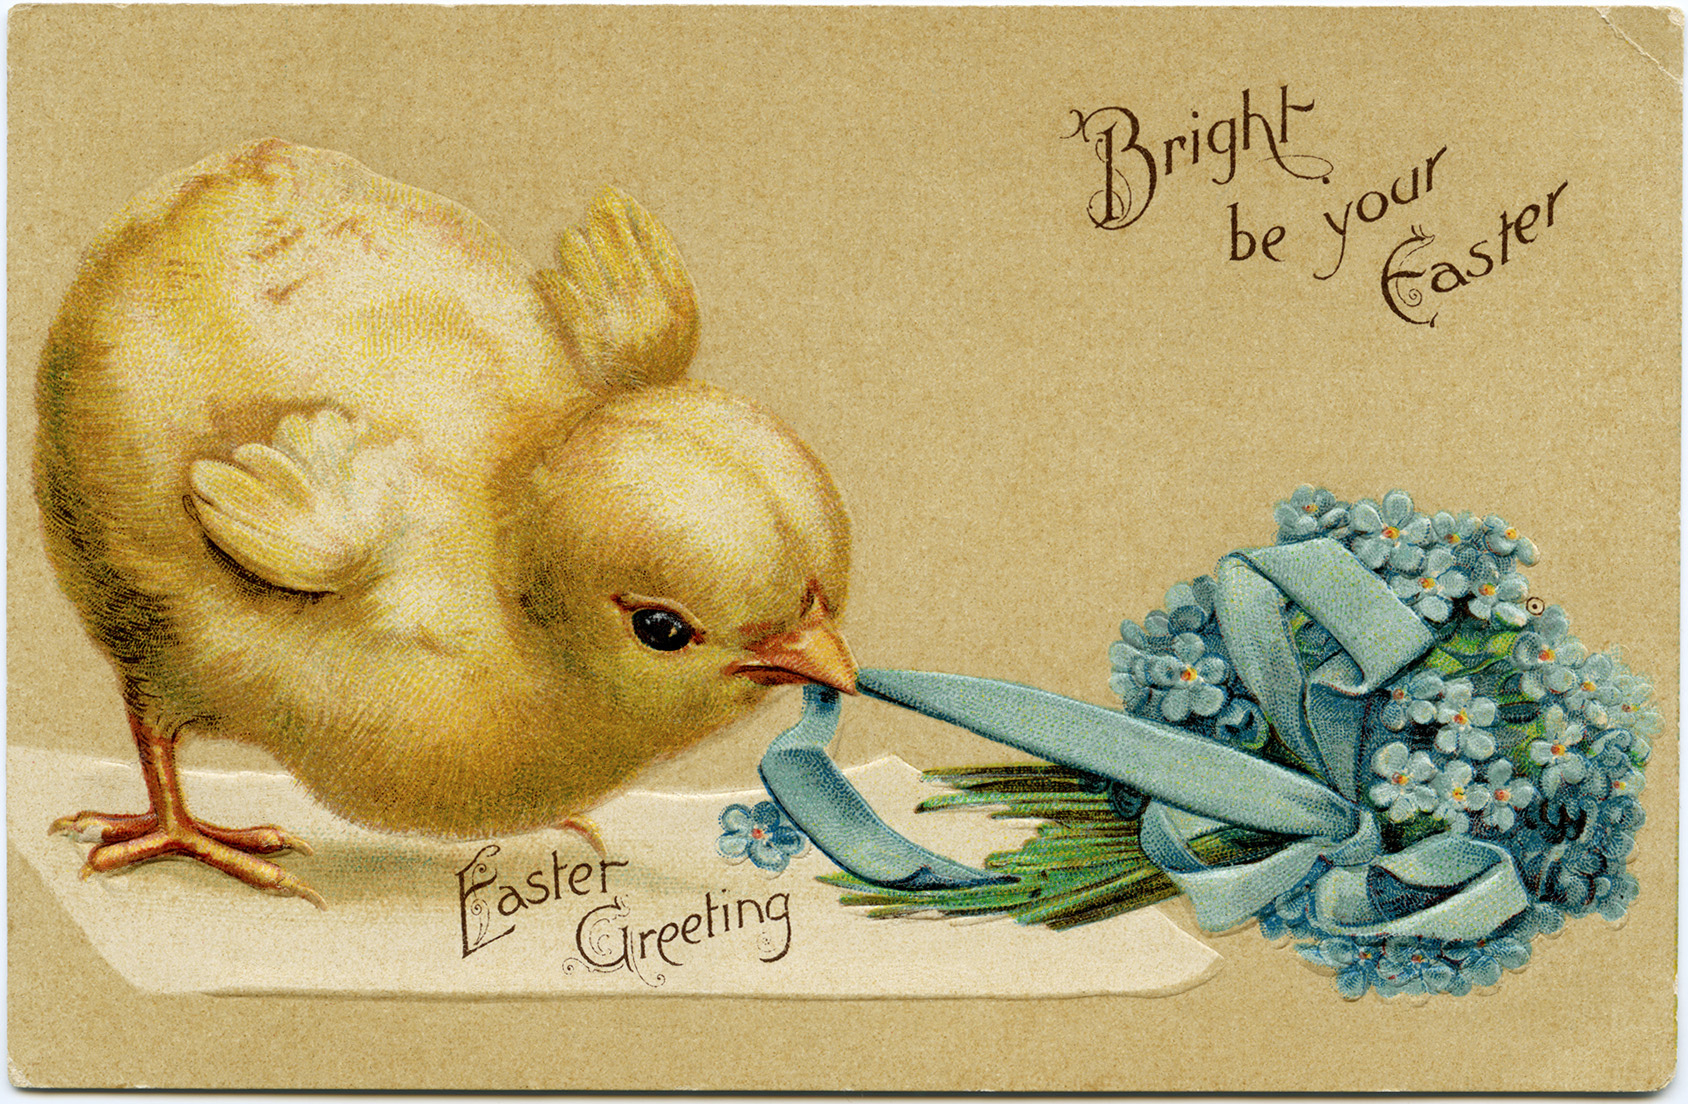 Vintage Easter Chick Postcard ~ Free Digital Image - Old Design Shop - Free Printable Vintage Easter Images